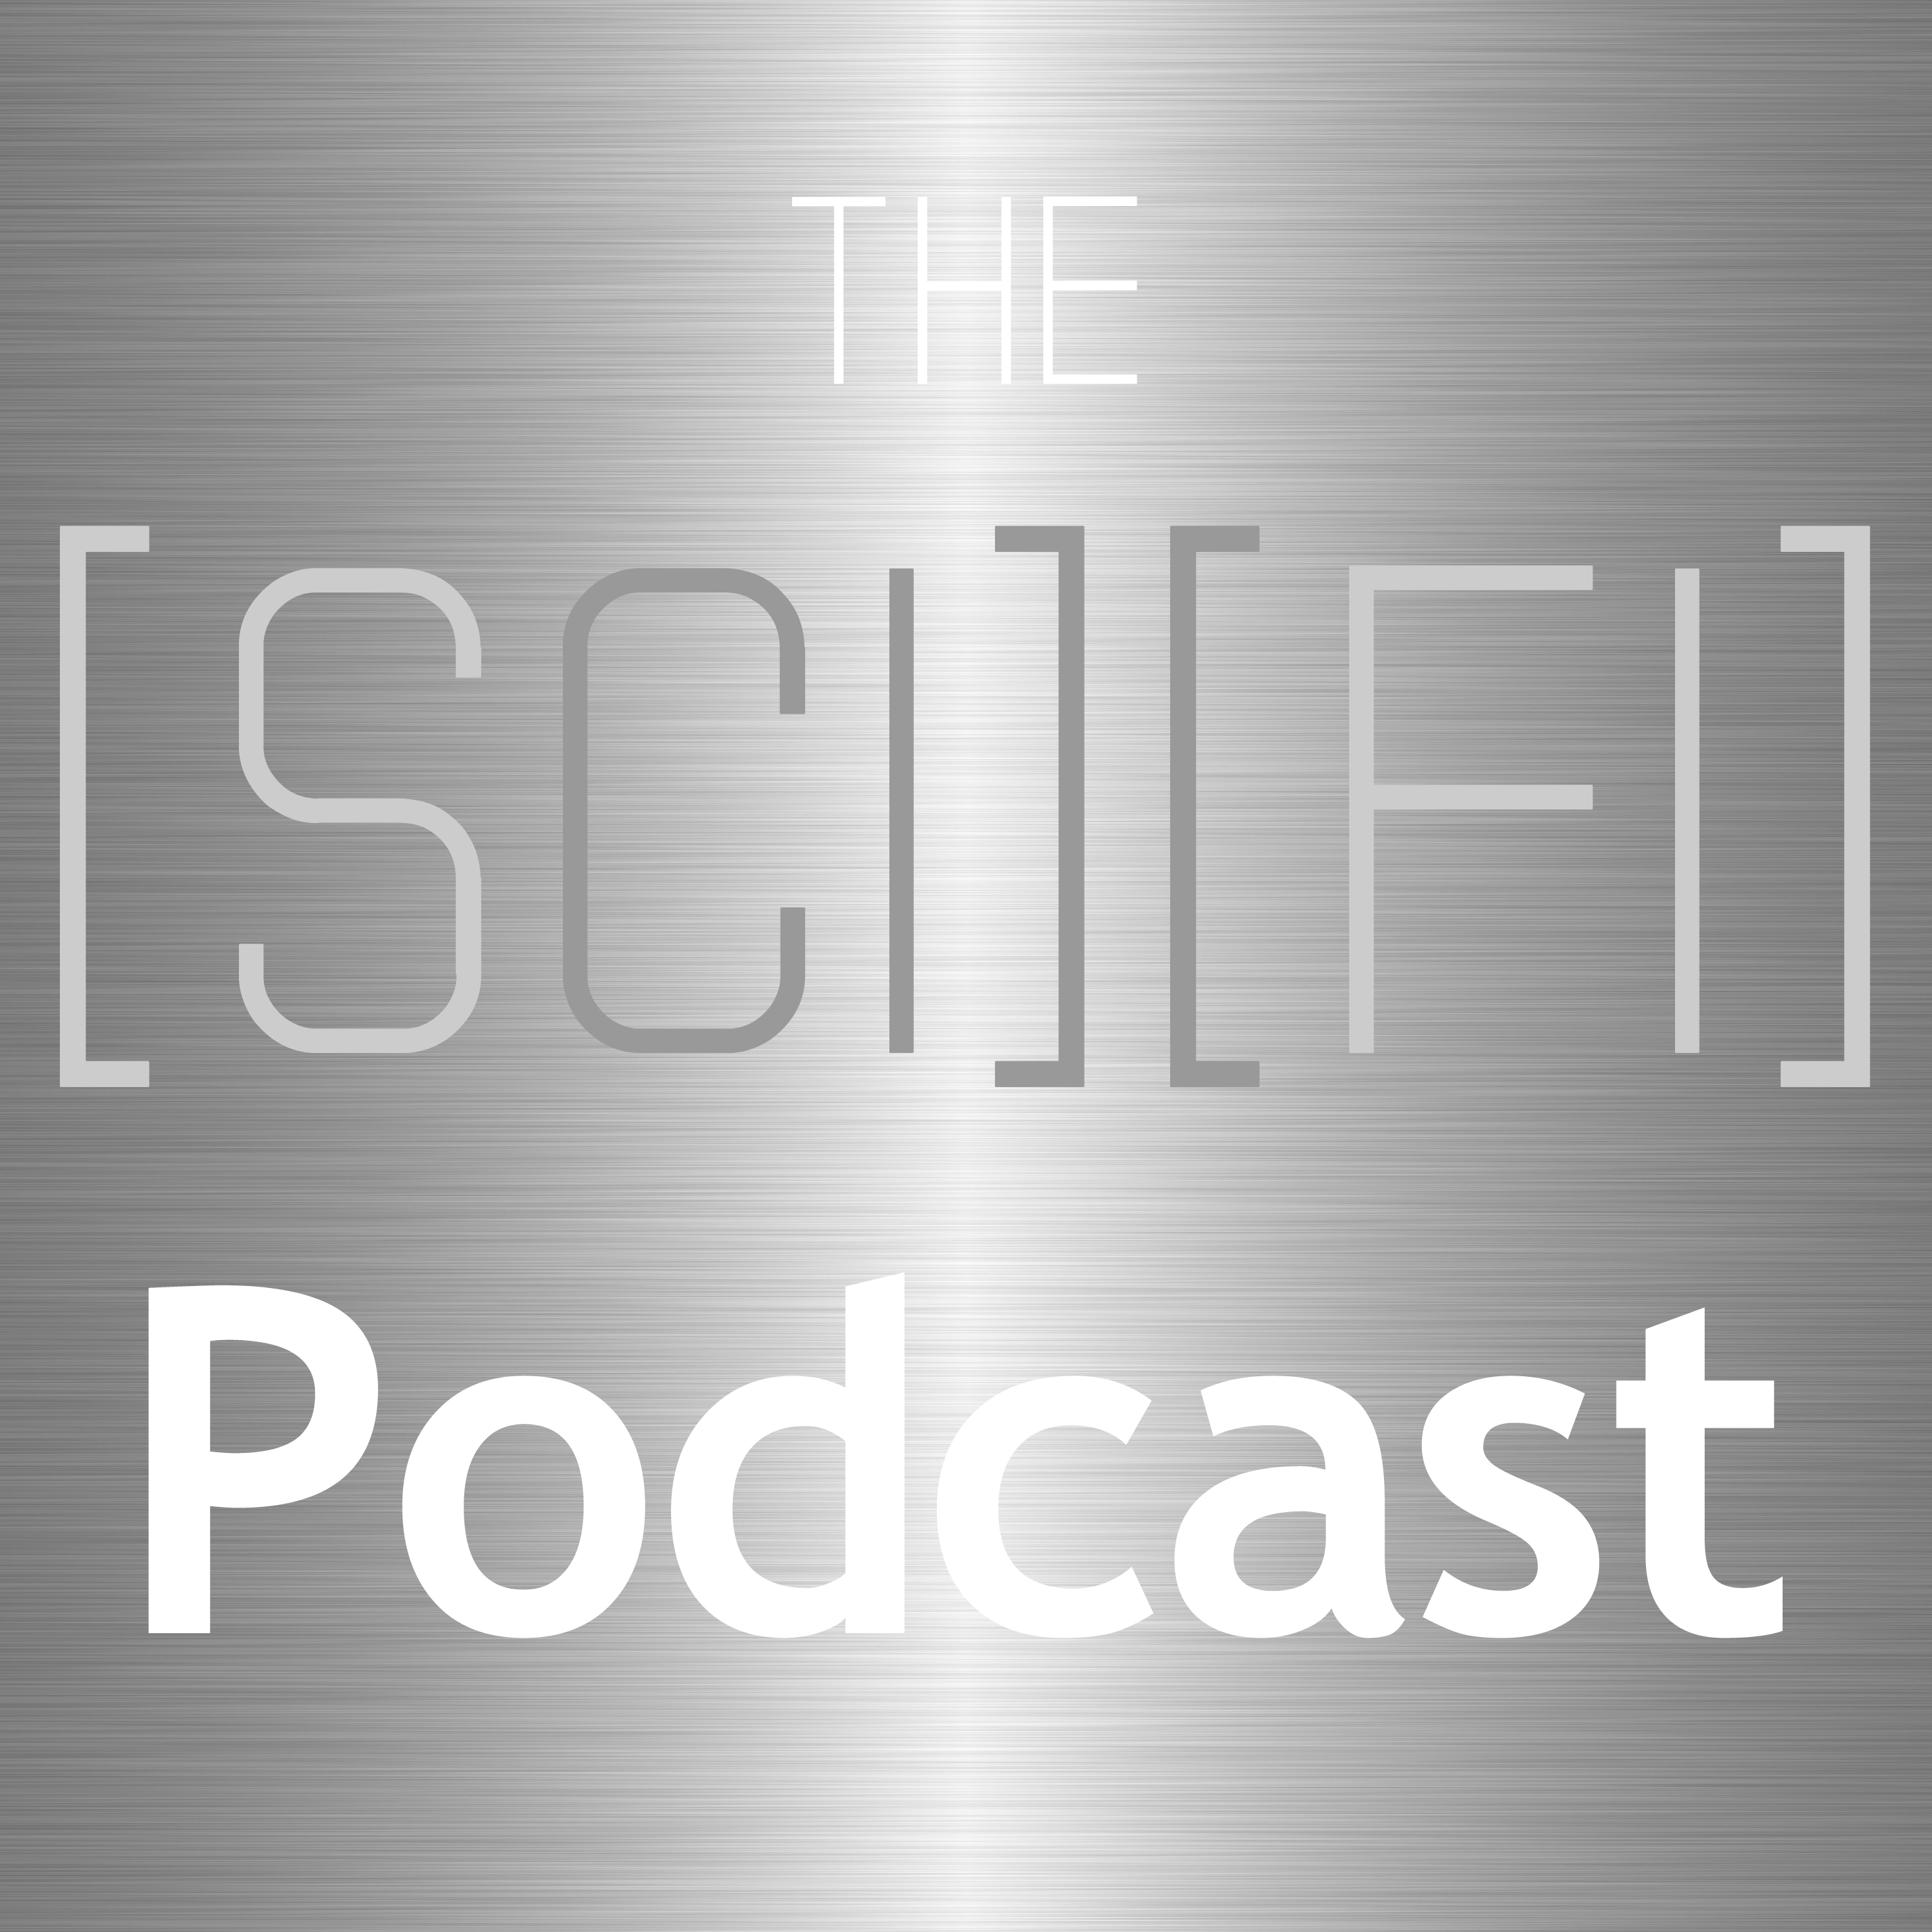 The Sci Fi Podcast